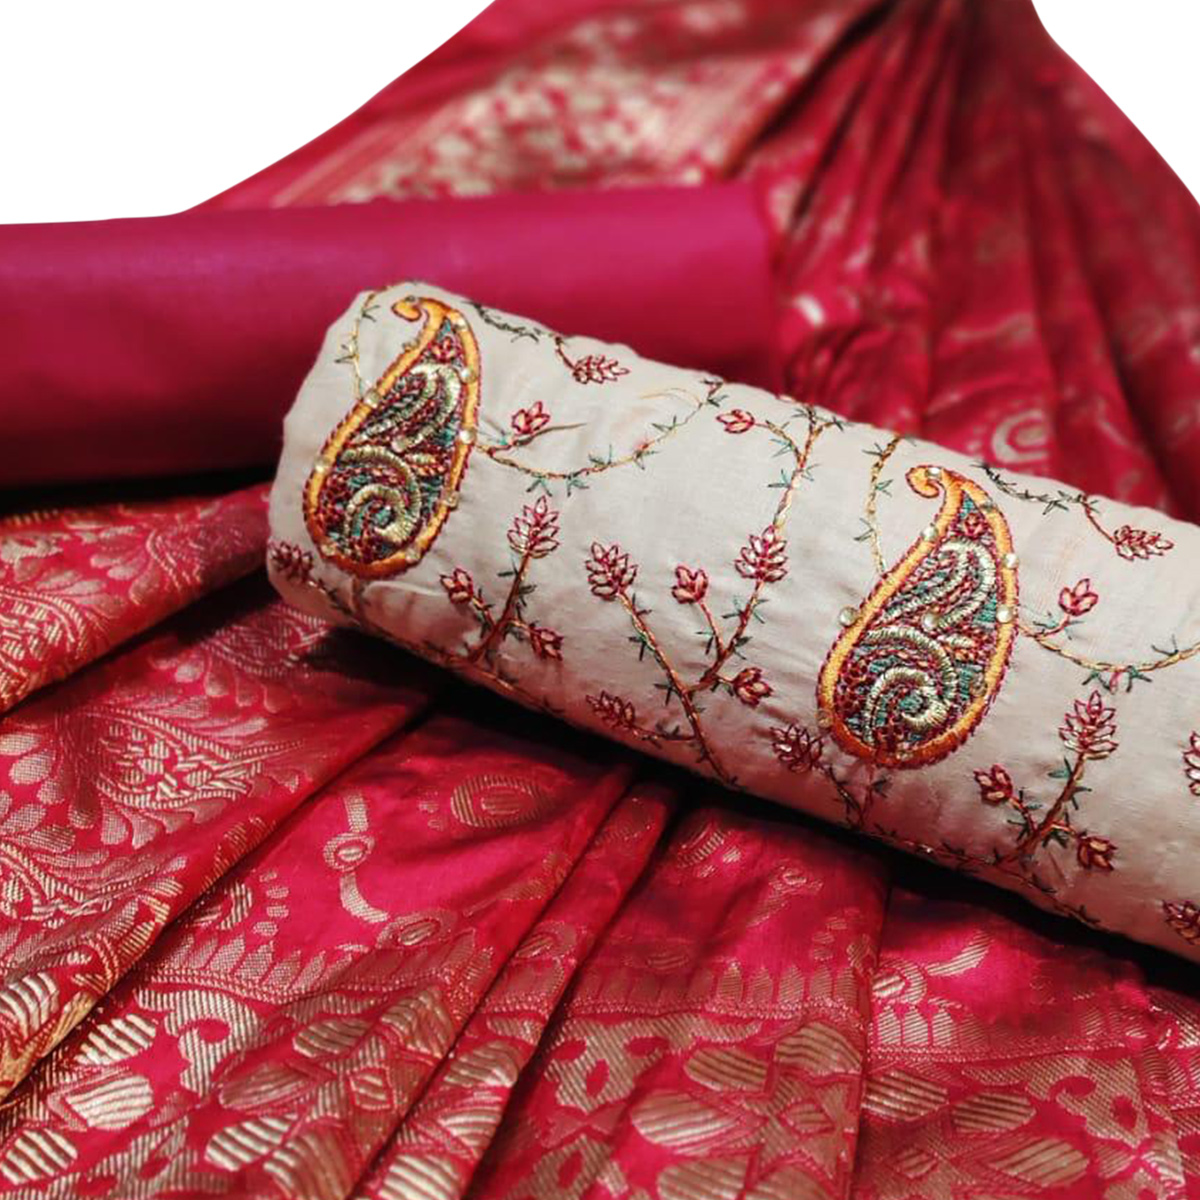 Unique Beige-Maroon Colored Partywear Embroidered Cotton Dress Material